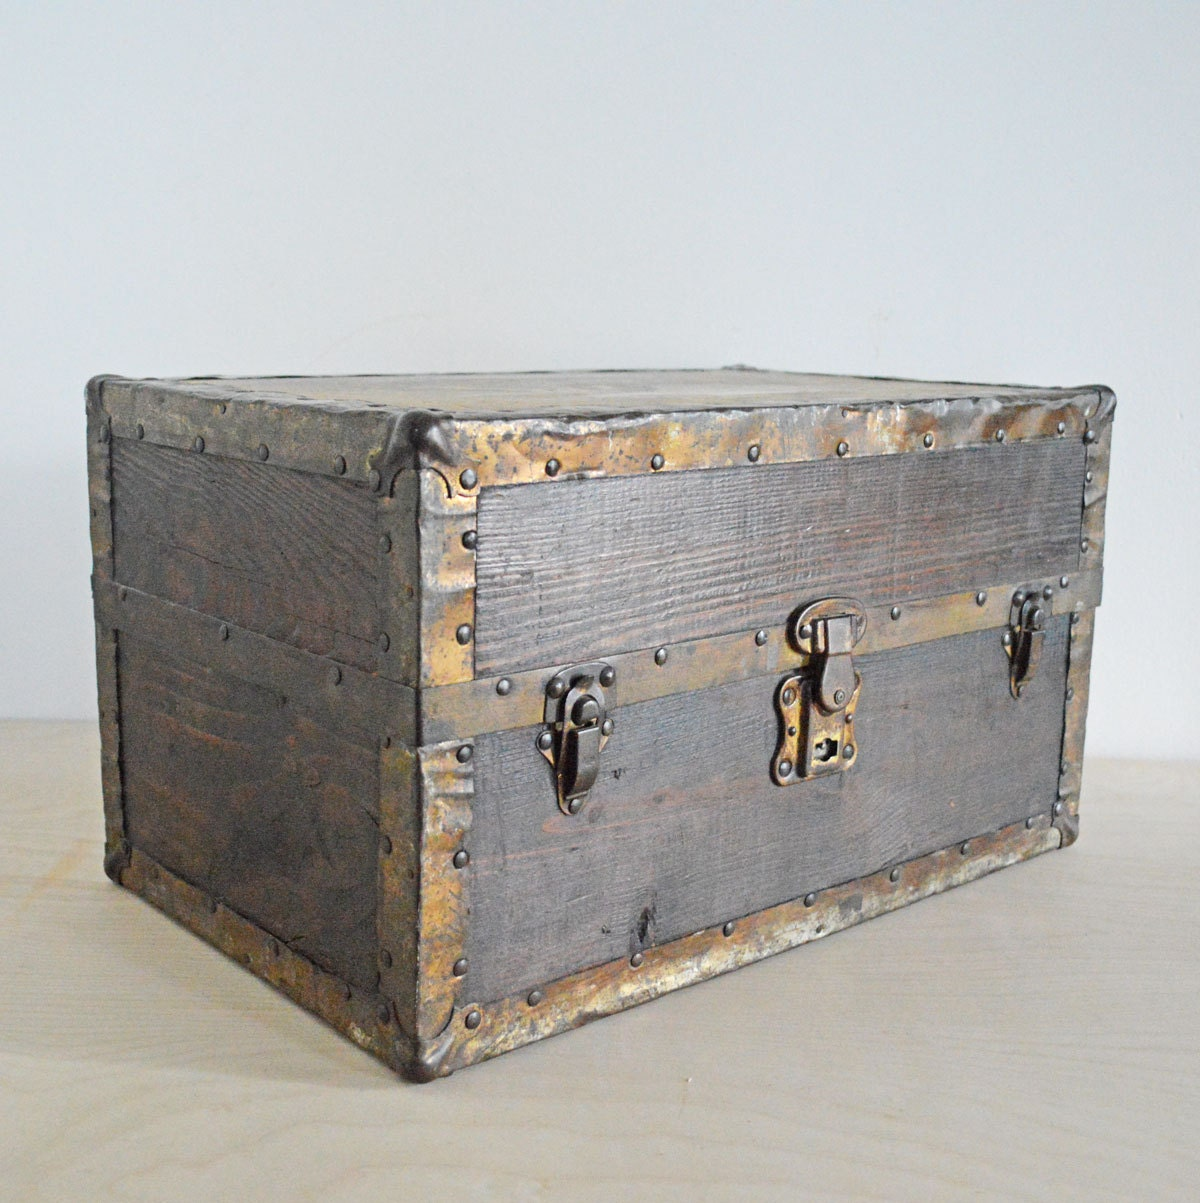 Toy Box Large Solid Wood Storage Chest Trunk Playroom: Vintage Wood Storage Box Toy Chest Wooden Case 18 By Mothrasue